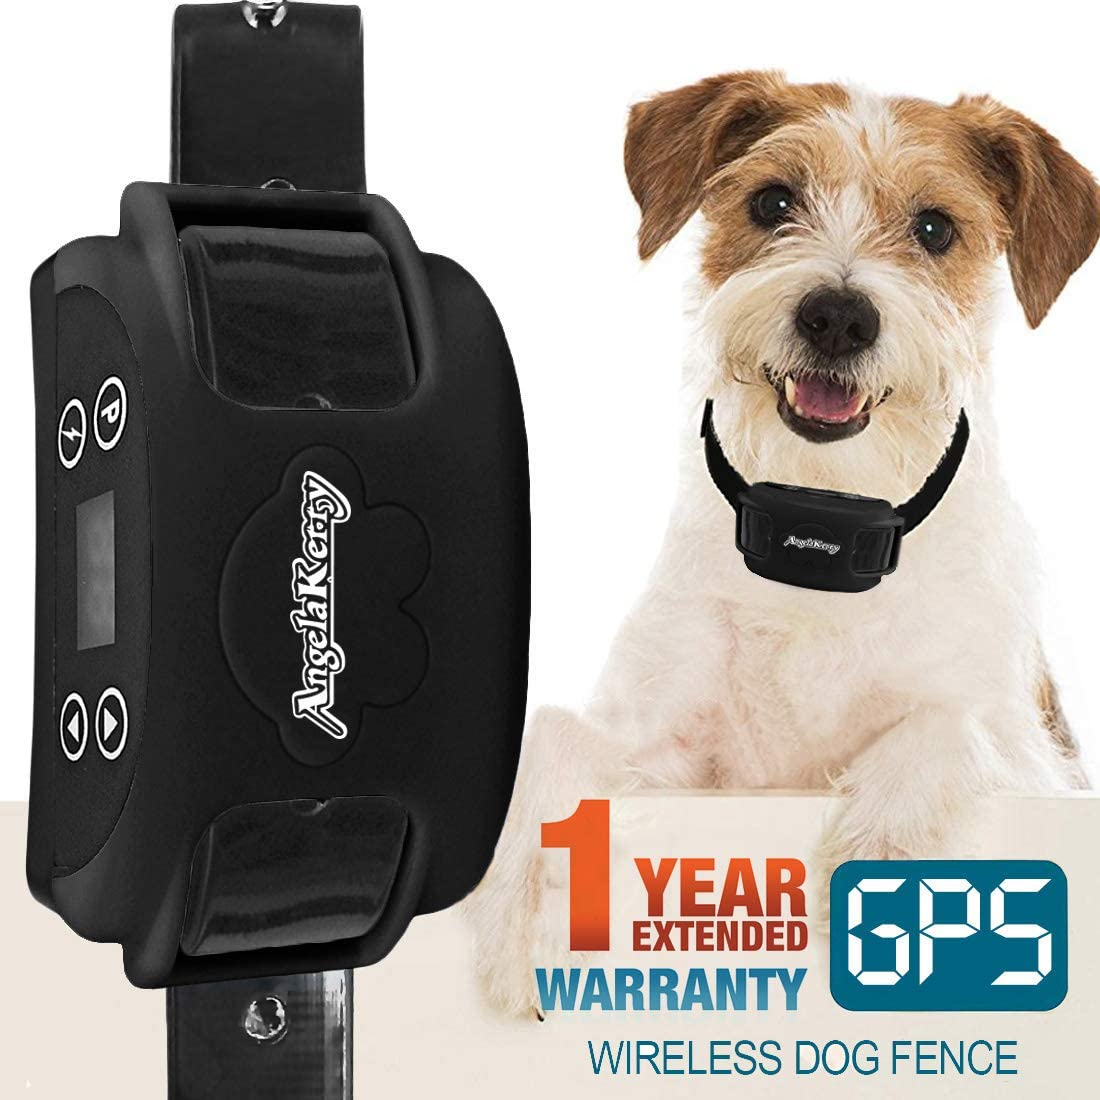 Best wireless electric dog fence 2